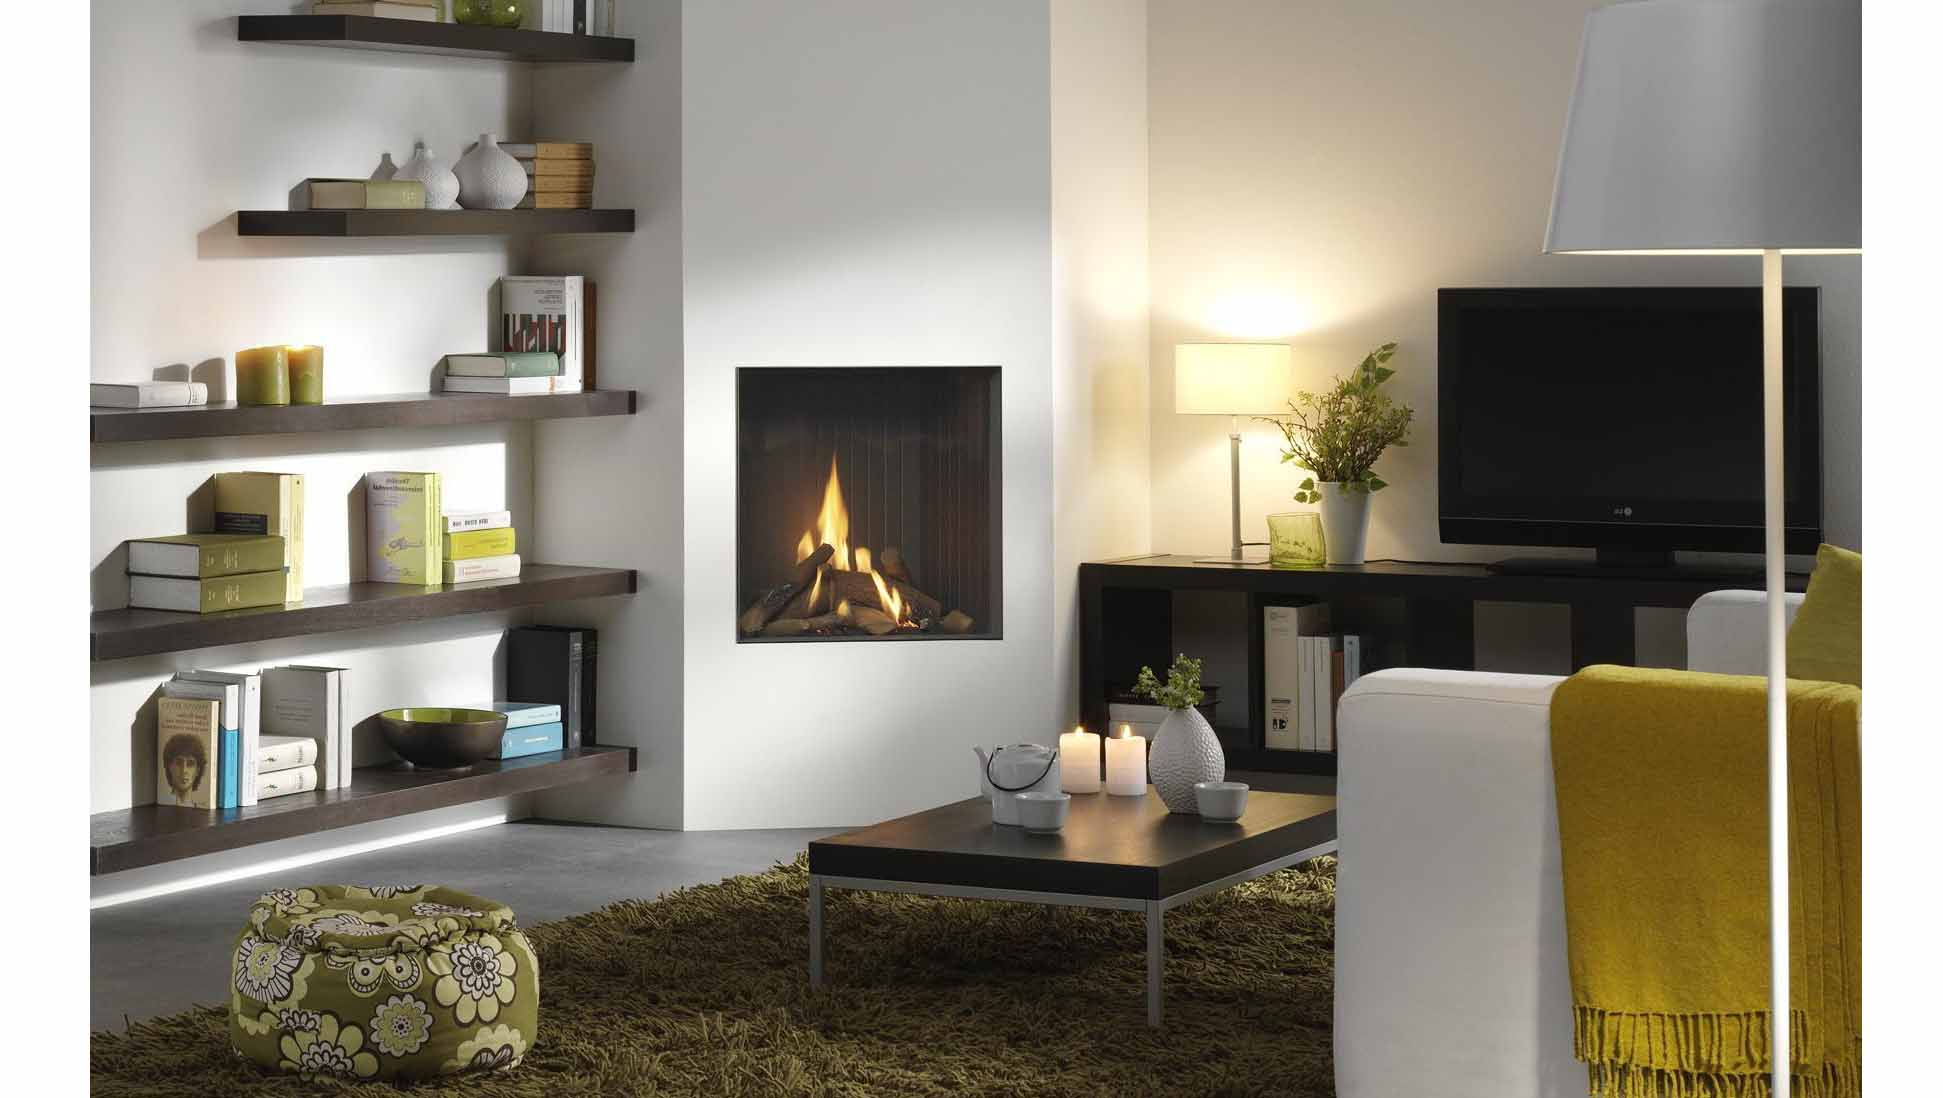 floating shelves fireplace style aidnature wall hanging coat hanger kitchen cupboard tidy stainless steel island small bathroom sink units corner rack design wood beam mantle